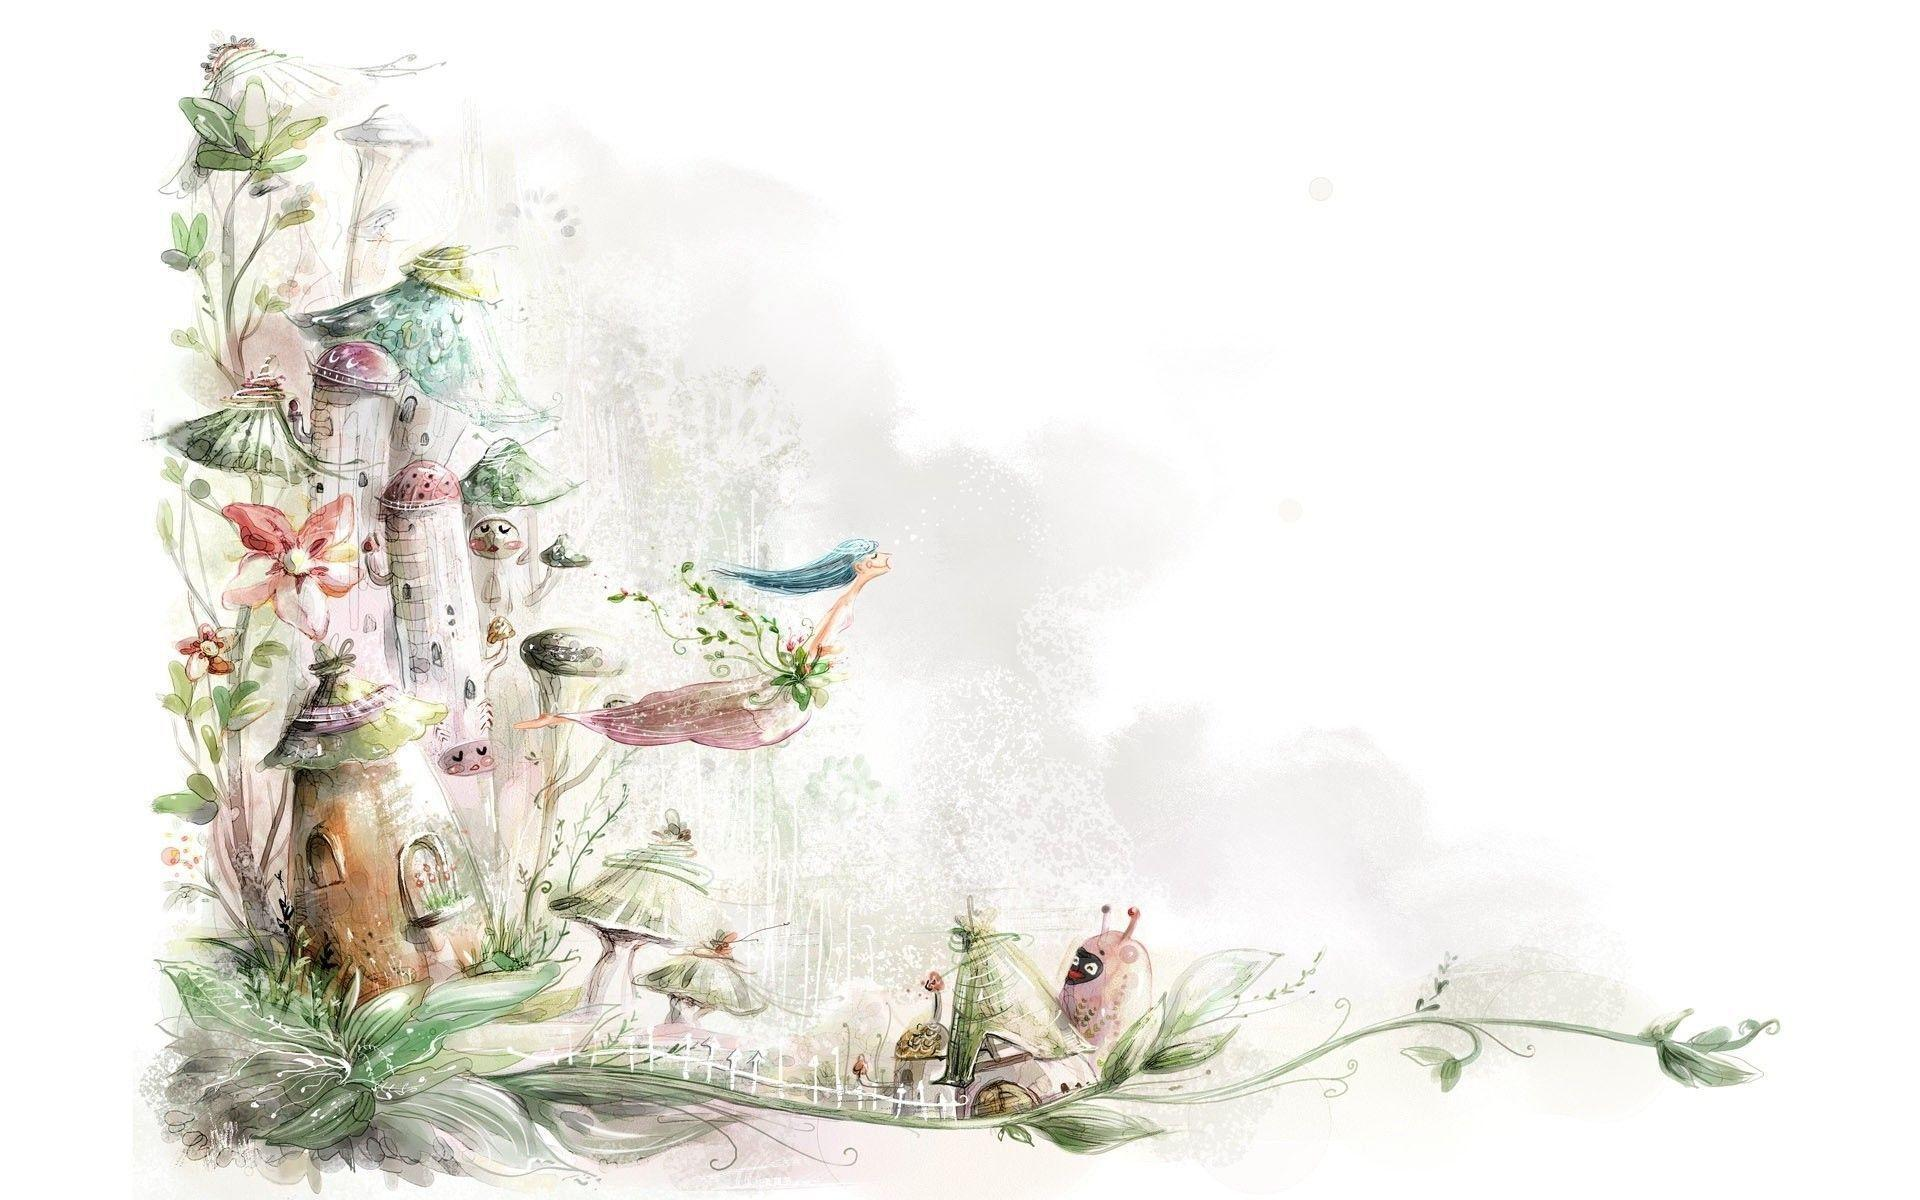 Fairy tale wallpapers wallpaper cave for Fairy tale powerpoint template free download